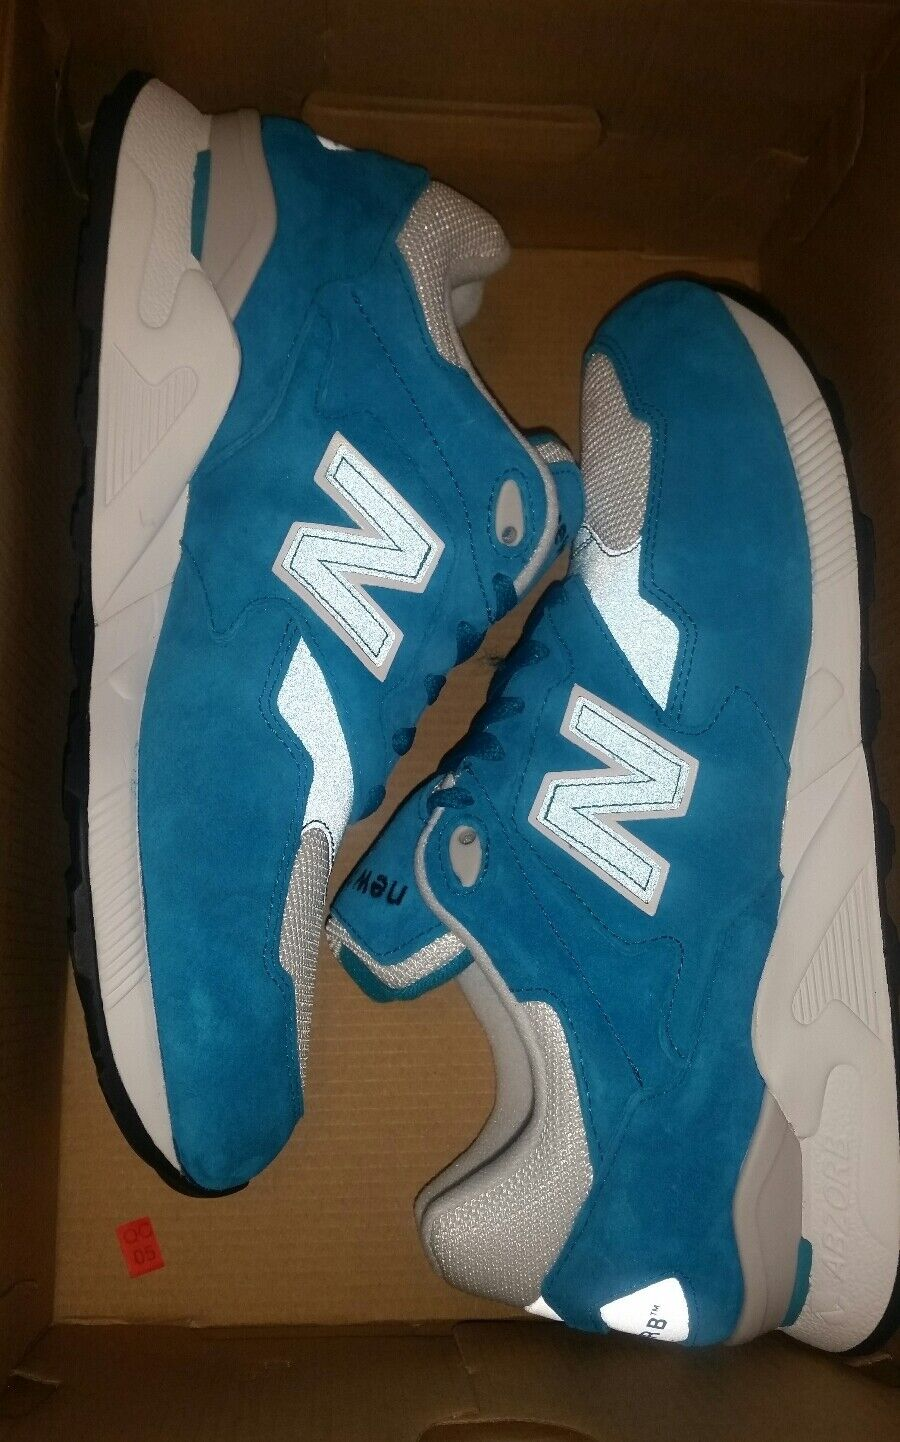 New balance 878 Abzorb 3M 3M 3M Athletic Running Schuhe Lifestyle Cross-Trainer Teal 998 37ce3a